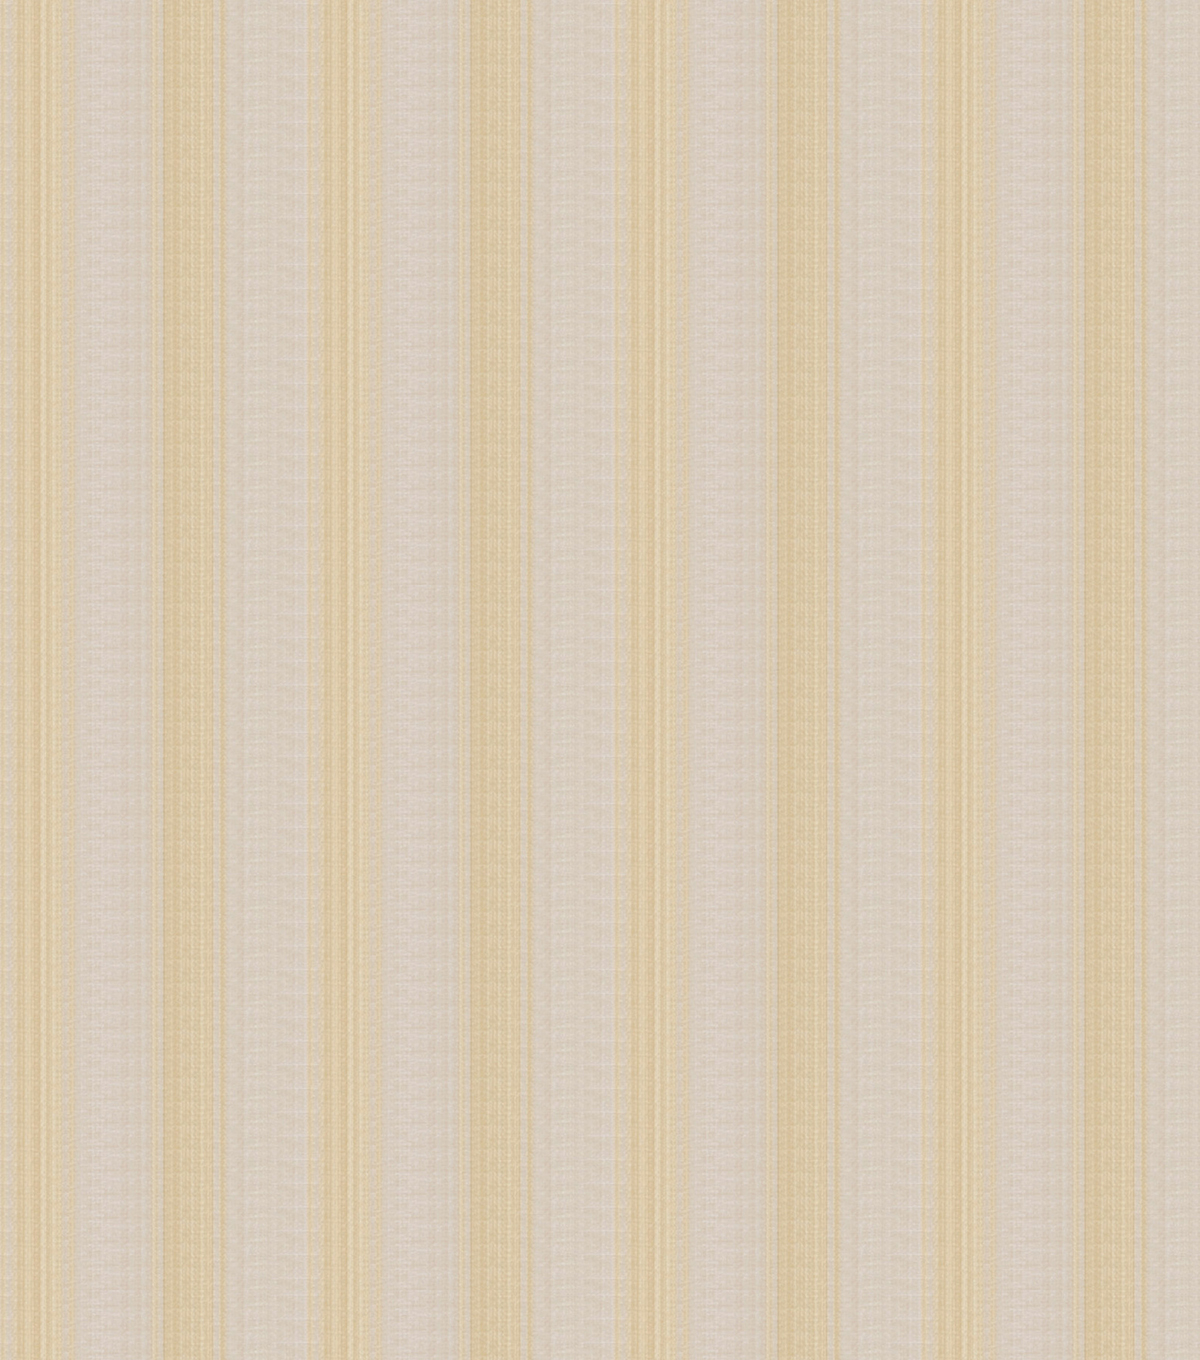 Home Decor 8x8 Fabric Swatch-Eaton Square Avery Beige